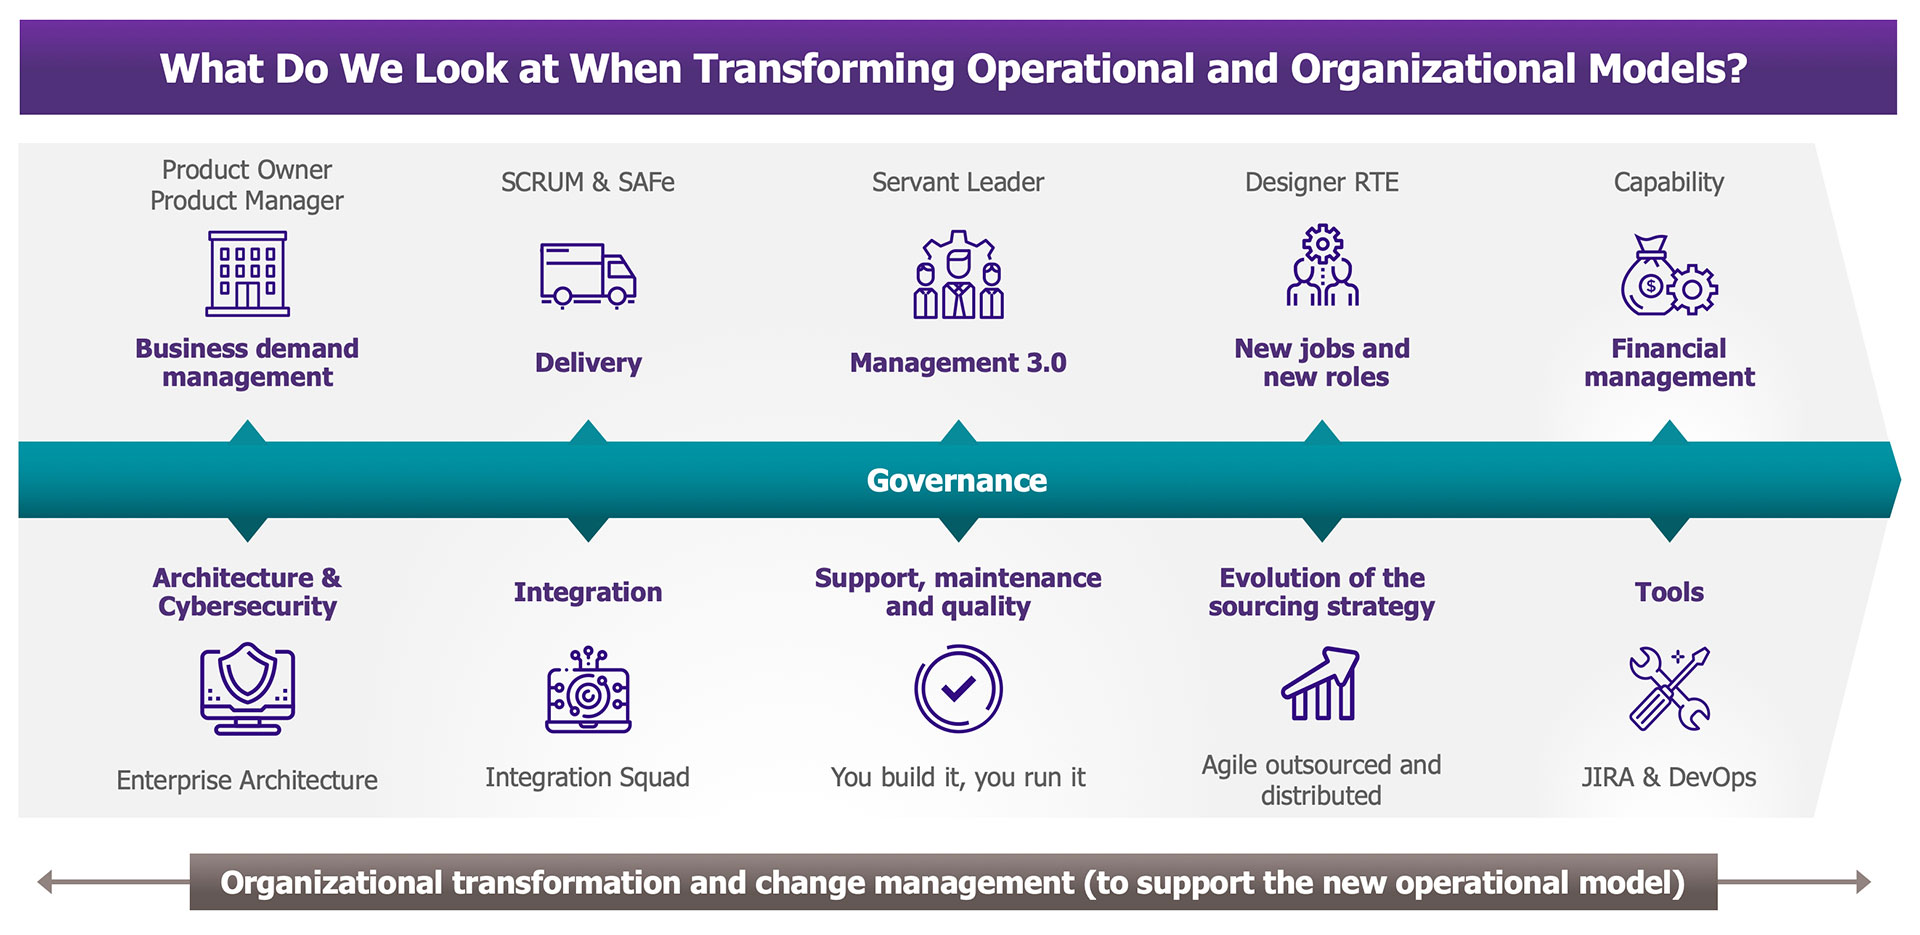 Transforming operational and organizational models